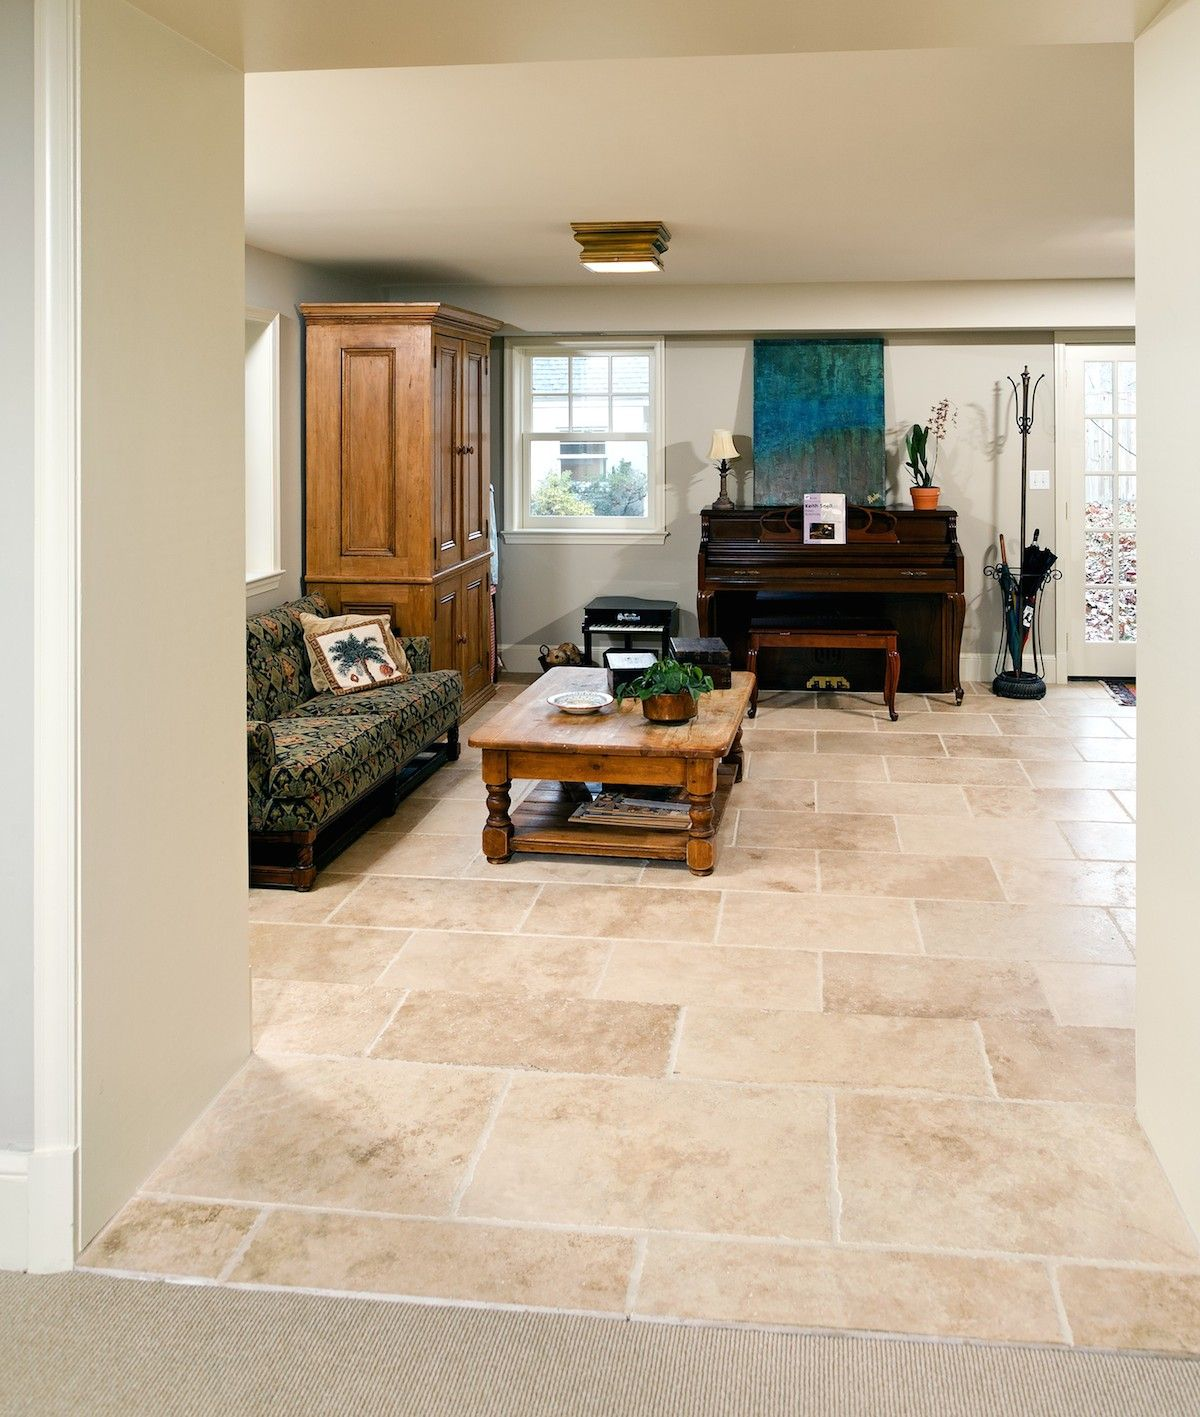 Home Renovations: Basement Remodel Means Extra Square